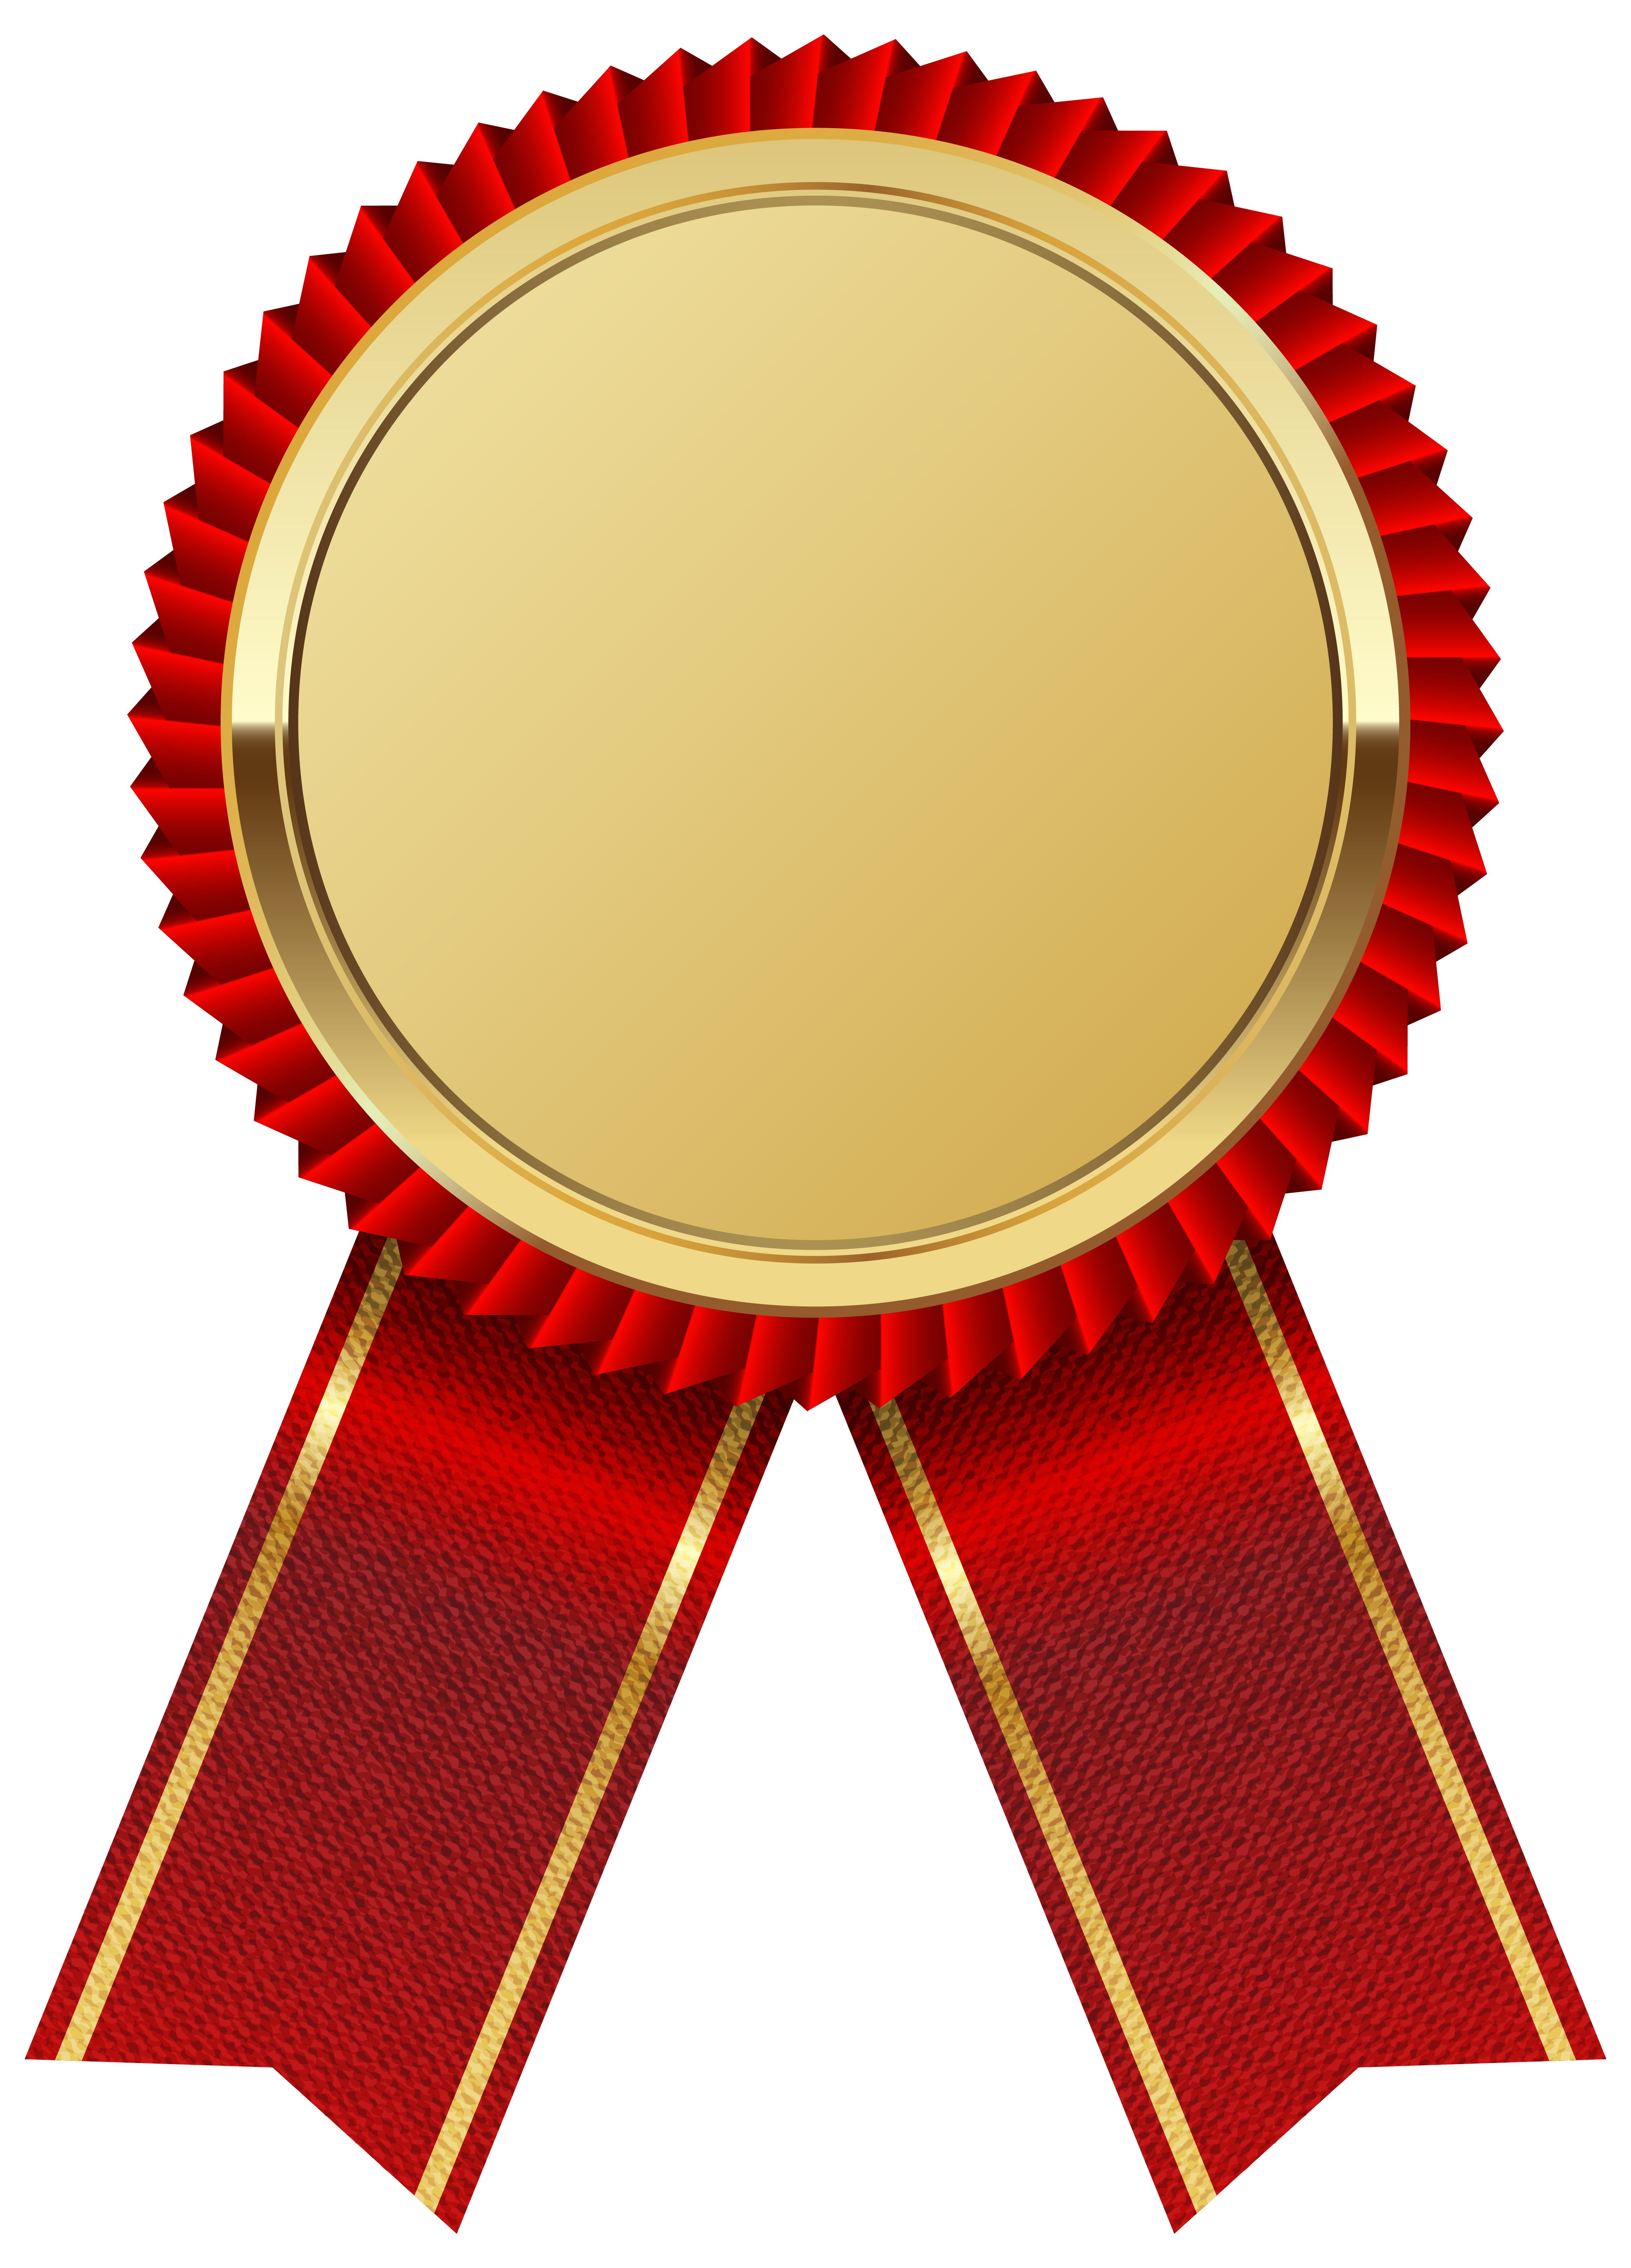 4354x6054 Gold Medal With Red Ribbon Png Clipart Image Ribbony